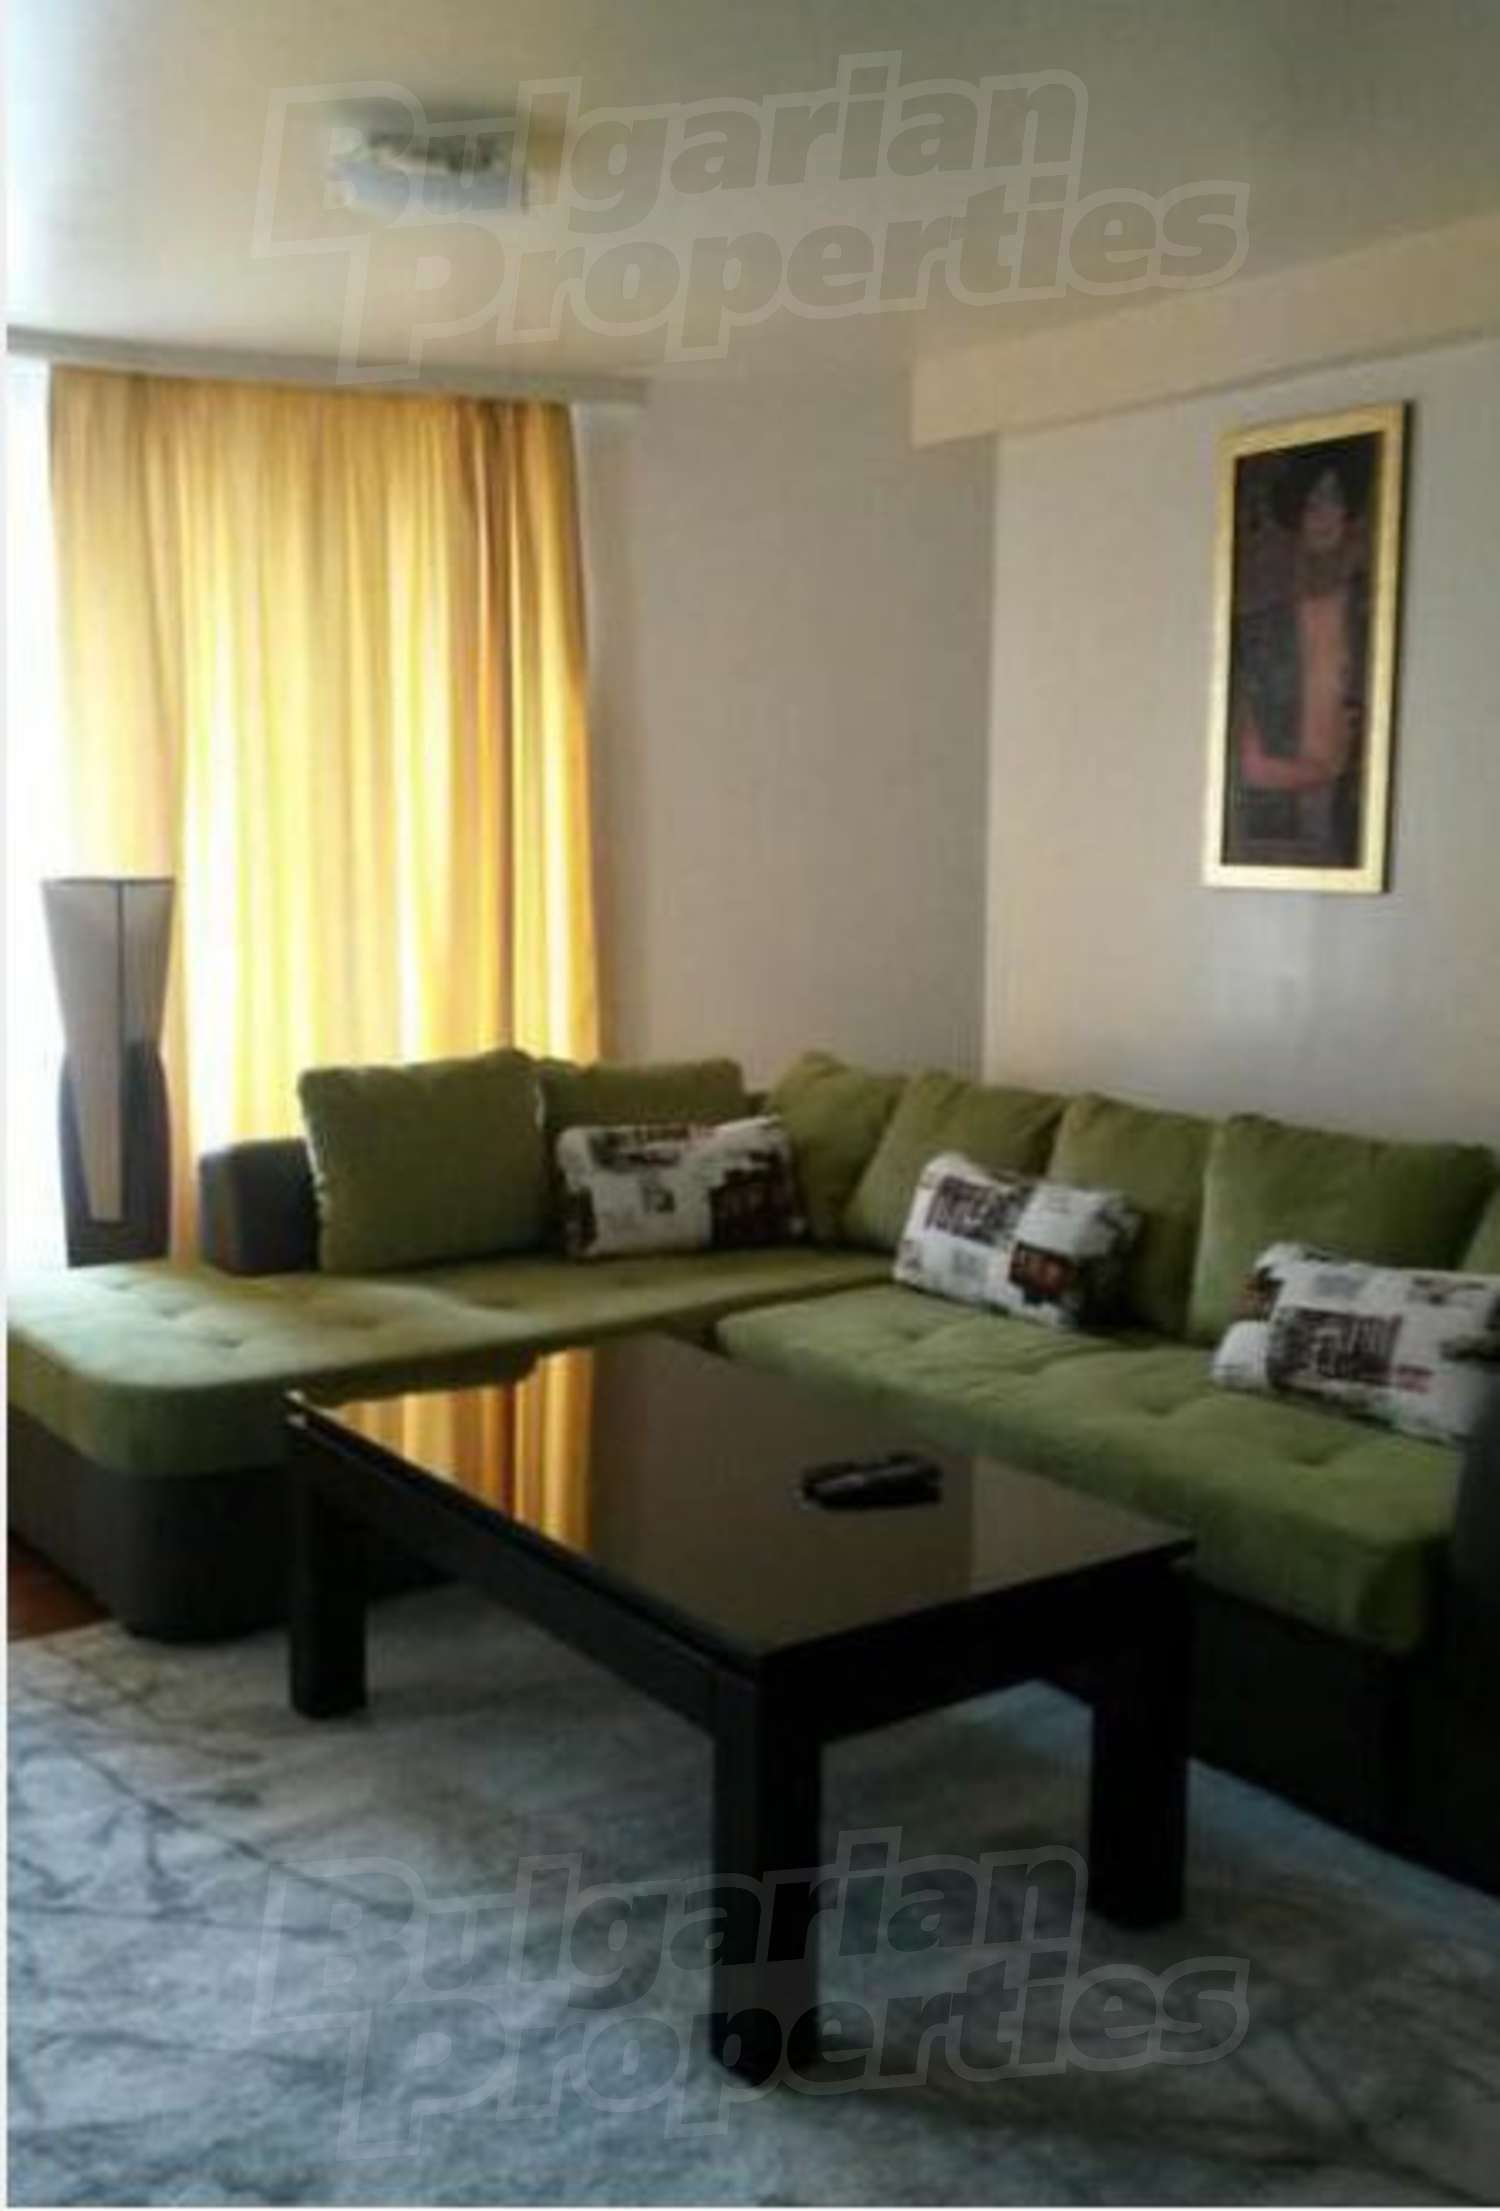 1 Bedroom Apartments Mn: 2-bedroom Apartment For Rent In Plovdiv, QuarterCenter